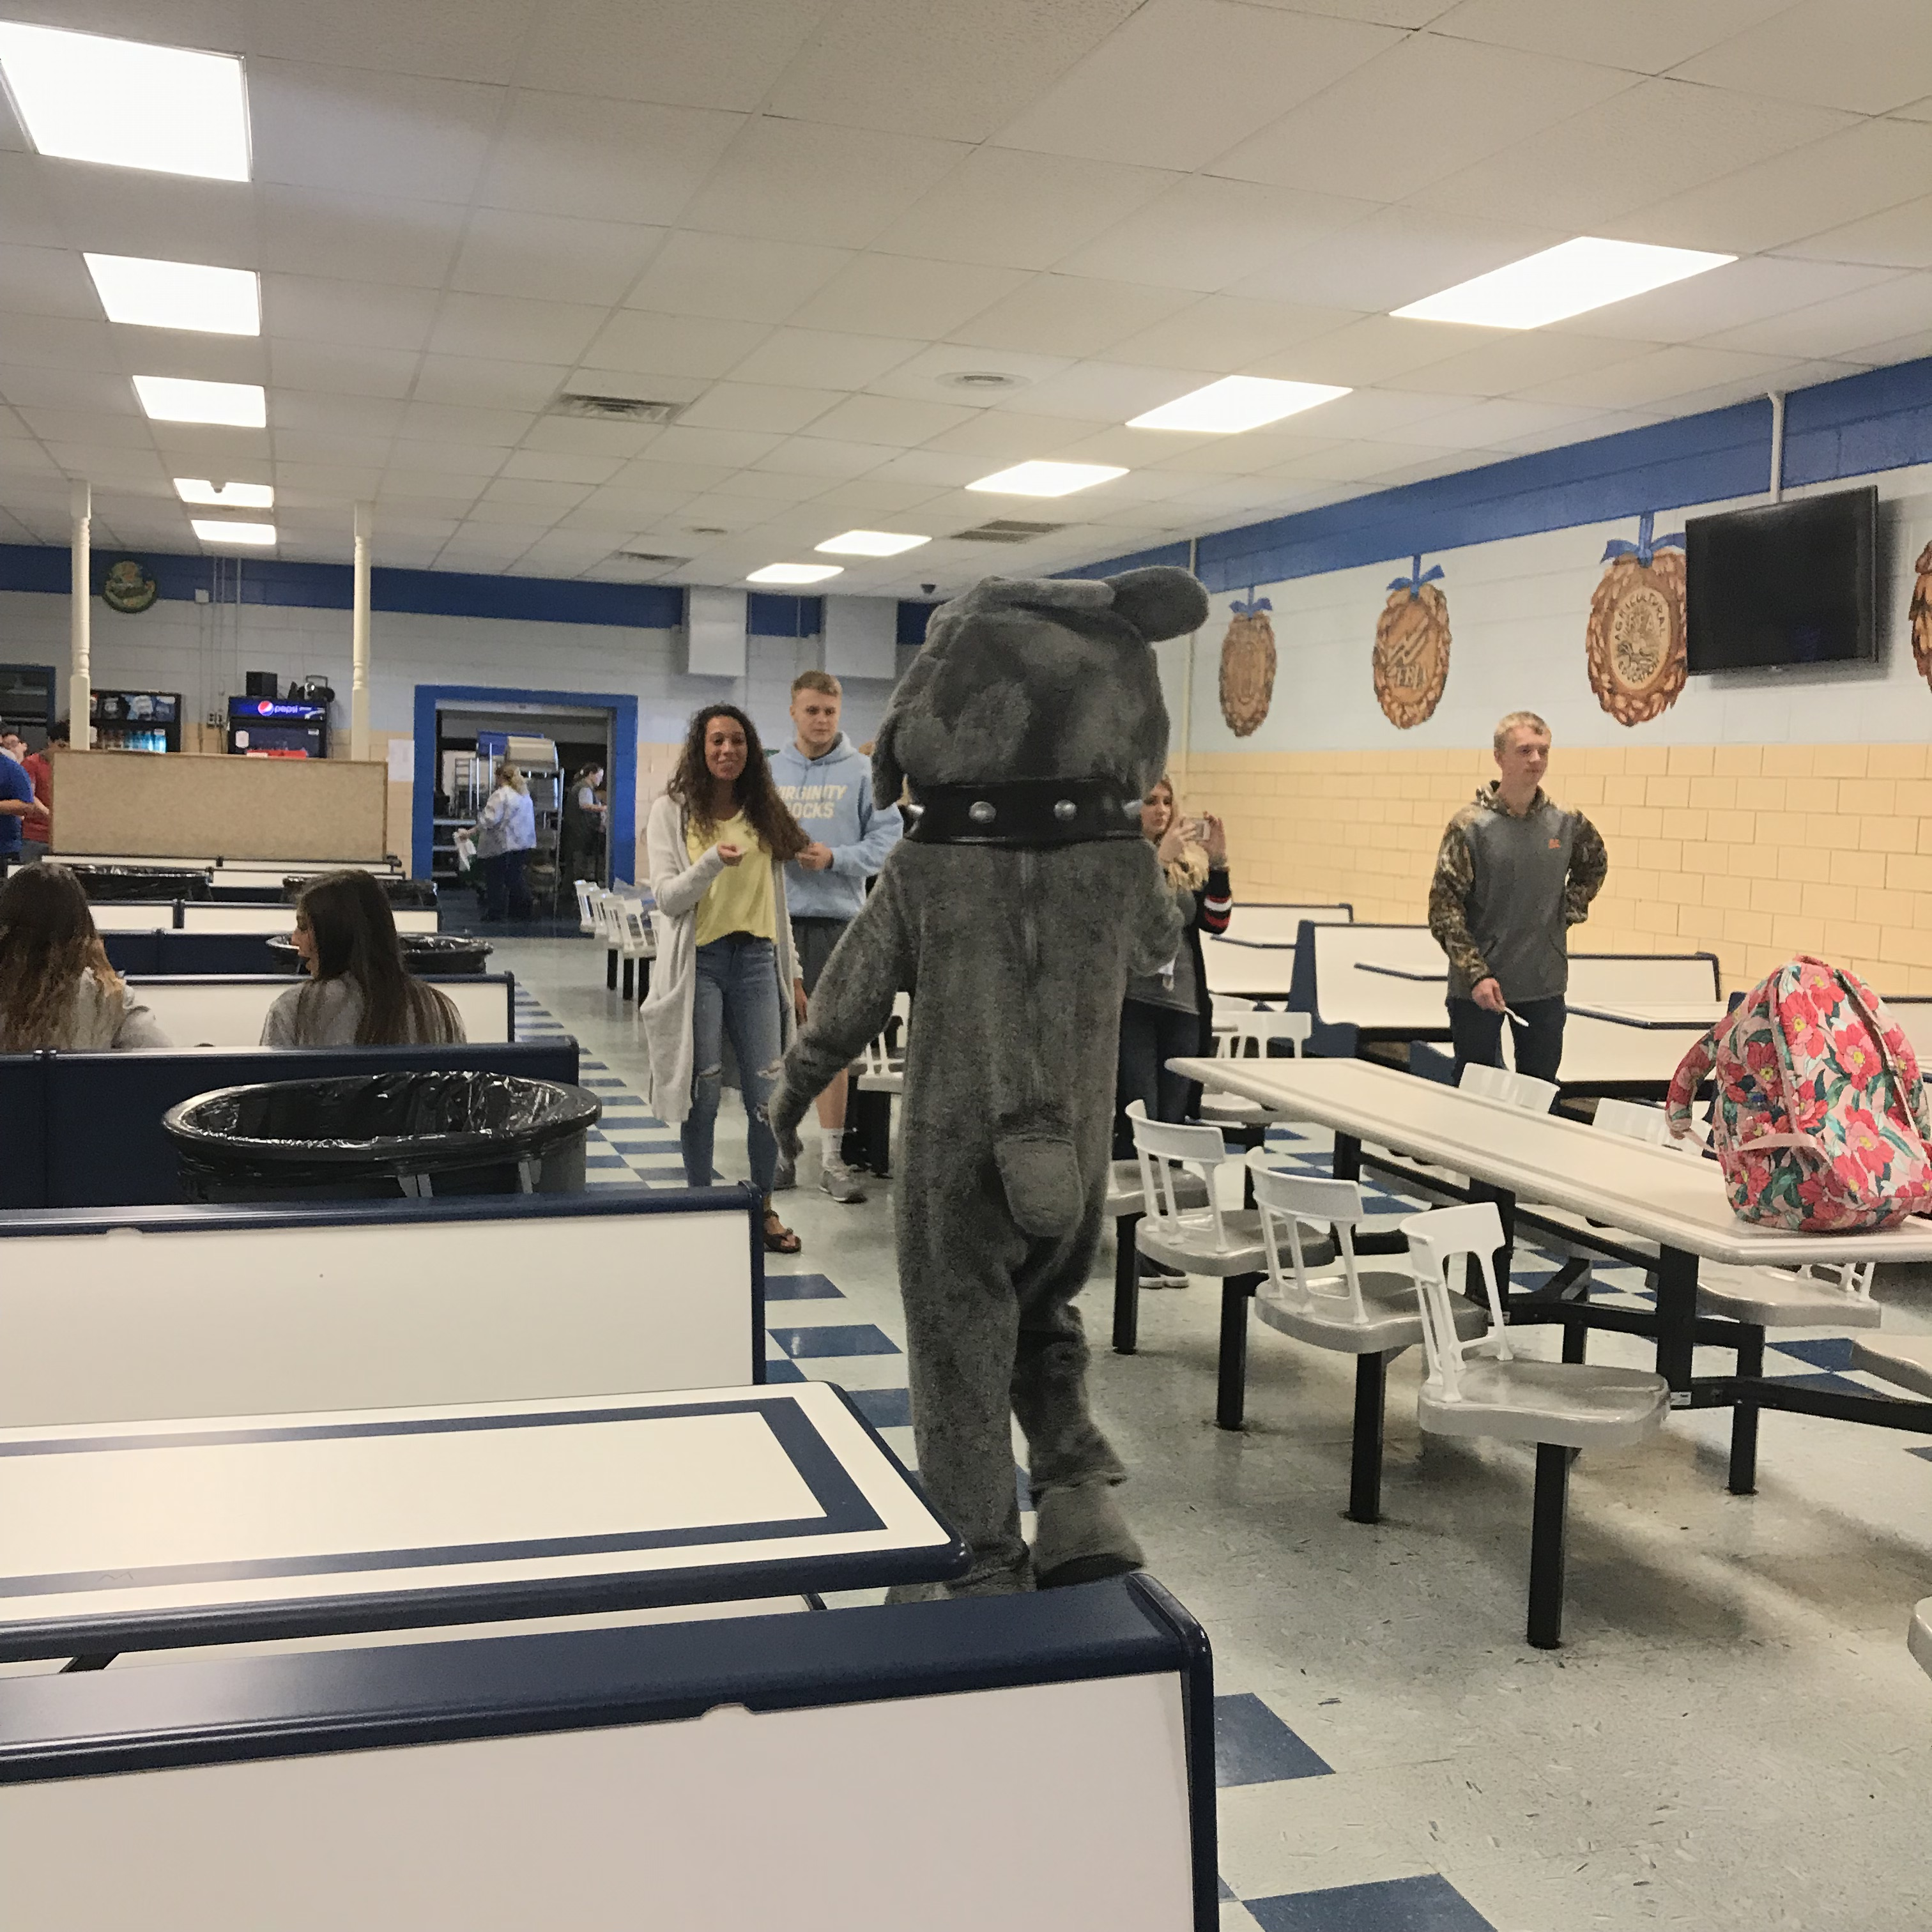 The CCHS Literacy Design Collaborative Team partnered with 21st Century to host some break time games during Read Across America Spirit Week at CCHS!